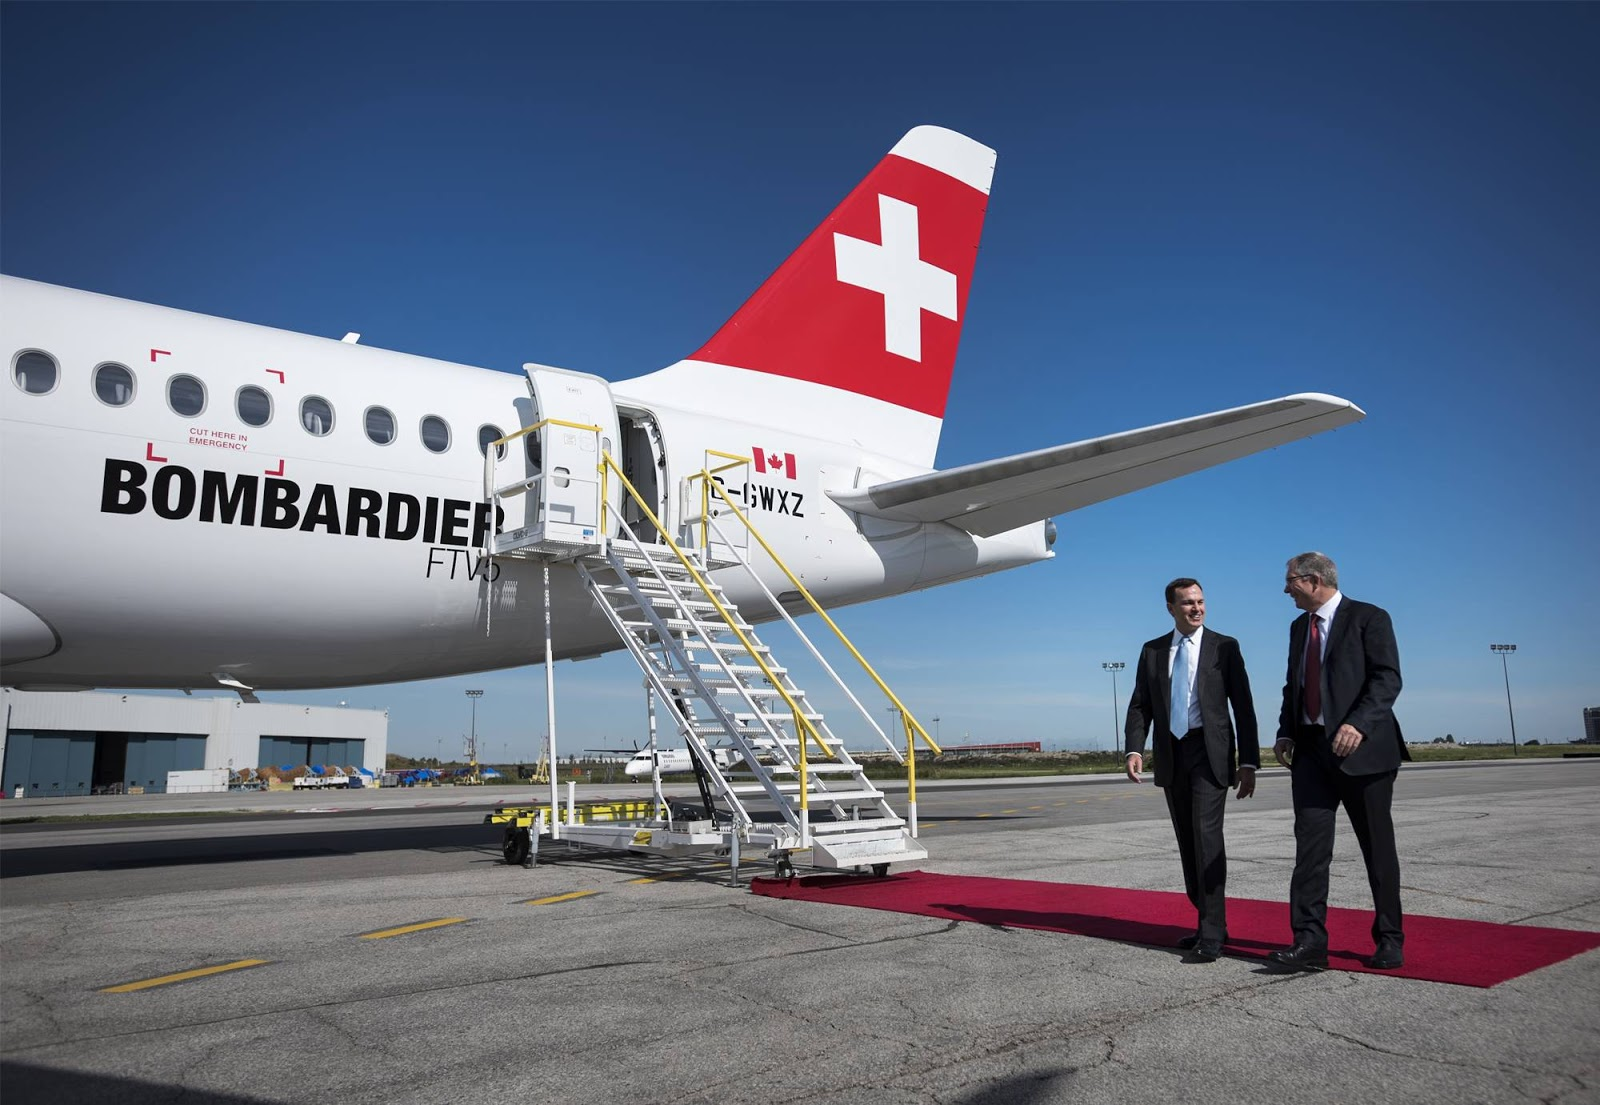 Biz jet way bombardier has been burning cash at an alarming rate and has not secured any firm c series aircraft orders for over 12 months fandeluxe Images